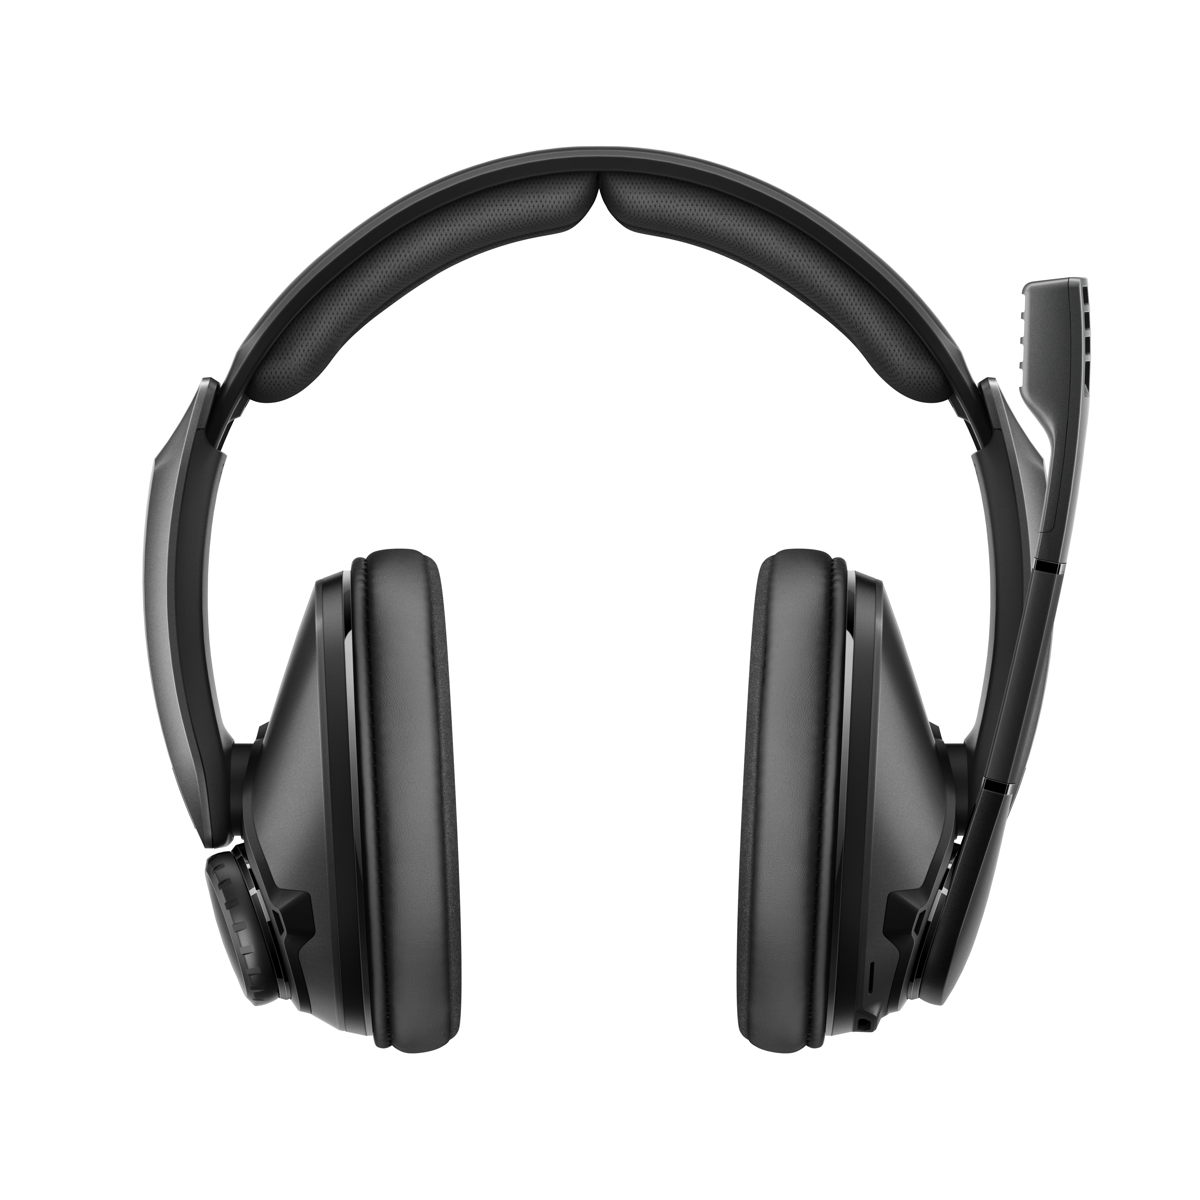 The headband is split and reduces pressure on the skull. Memory ear cushions isolate ambient noise and provide a comfortable fit.